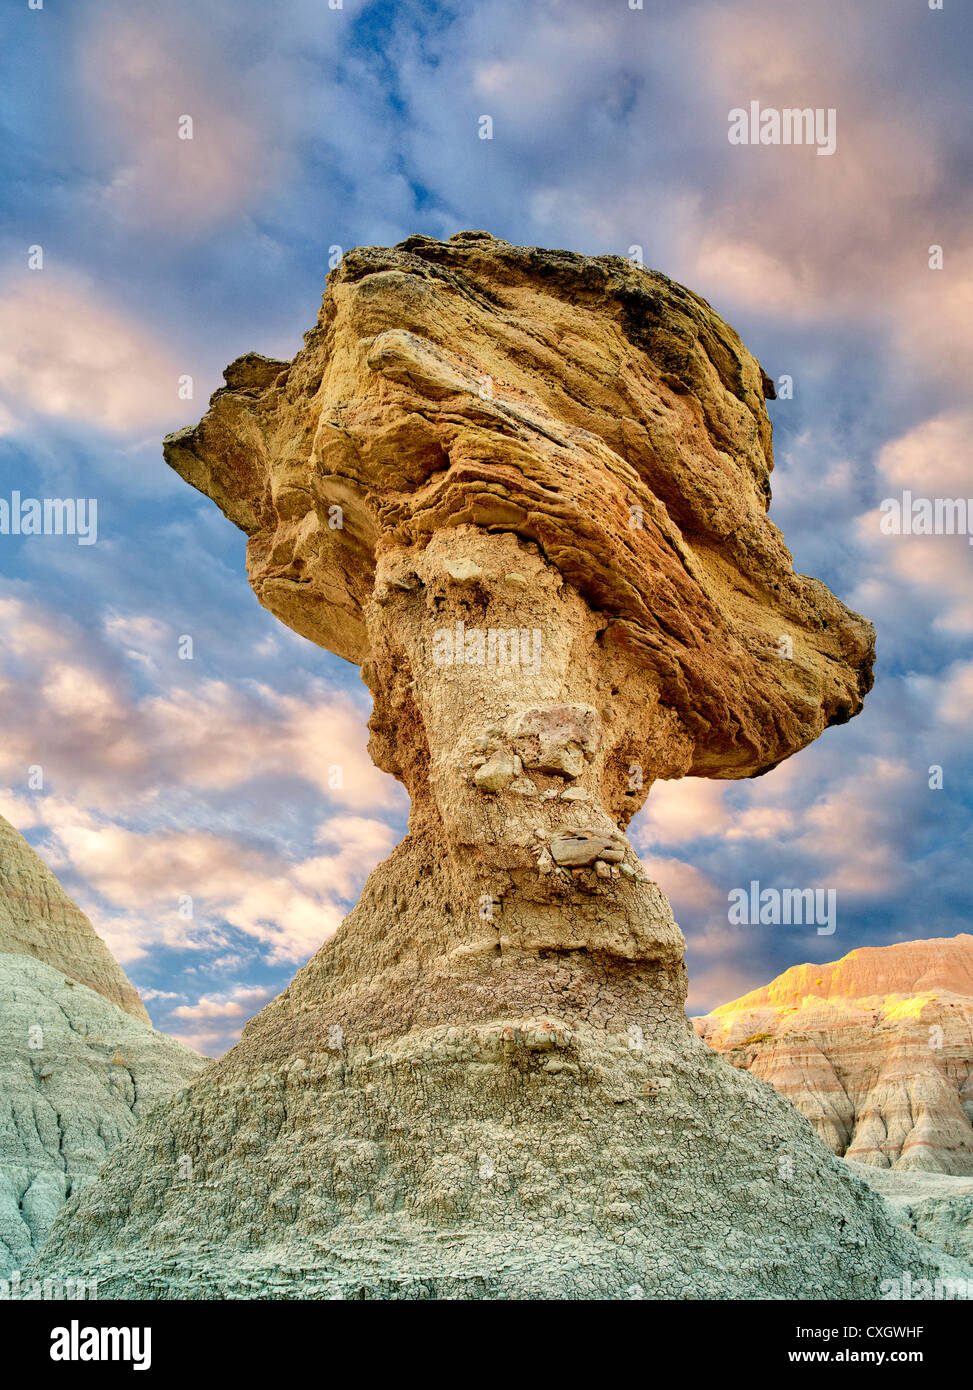 Balancing Rock Badlands National Park South Dakota Stock Photo Royalty Free Image 50773115